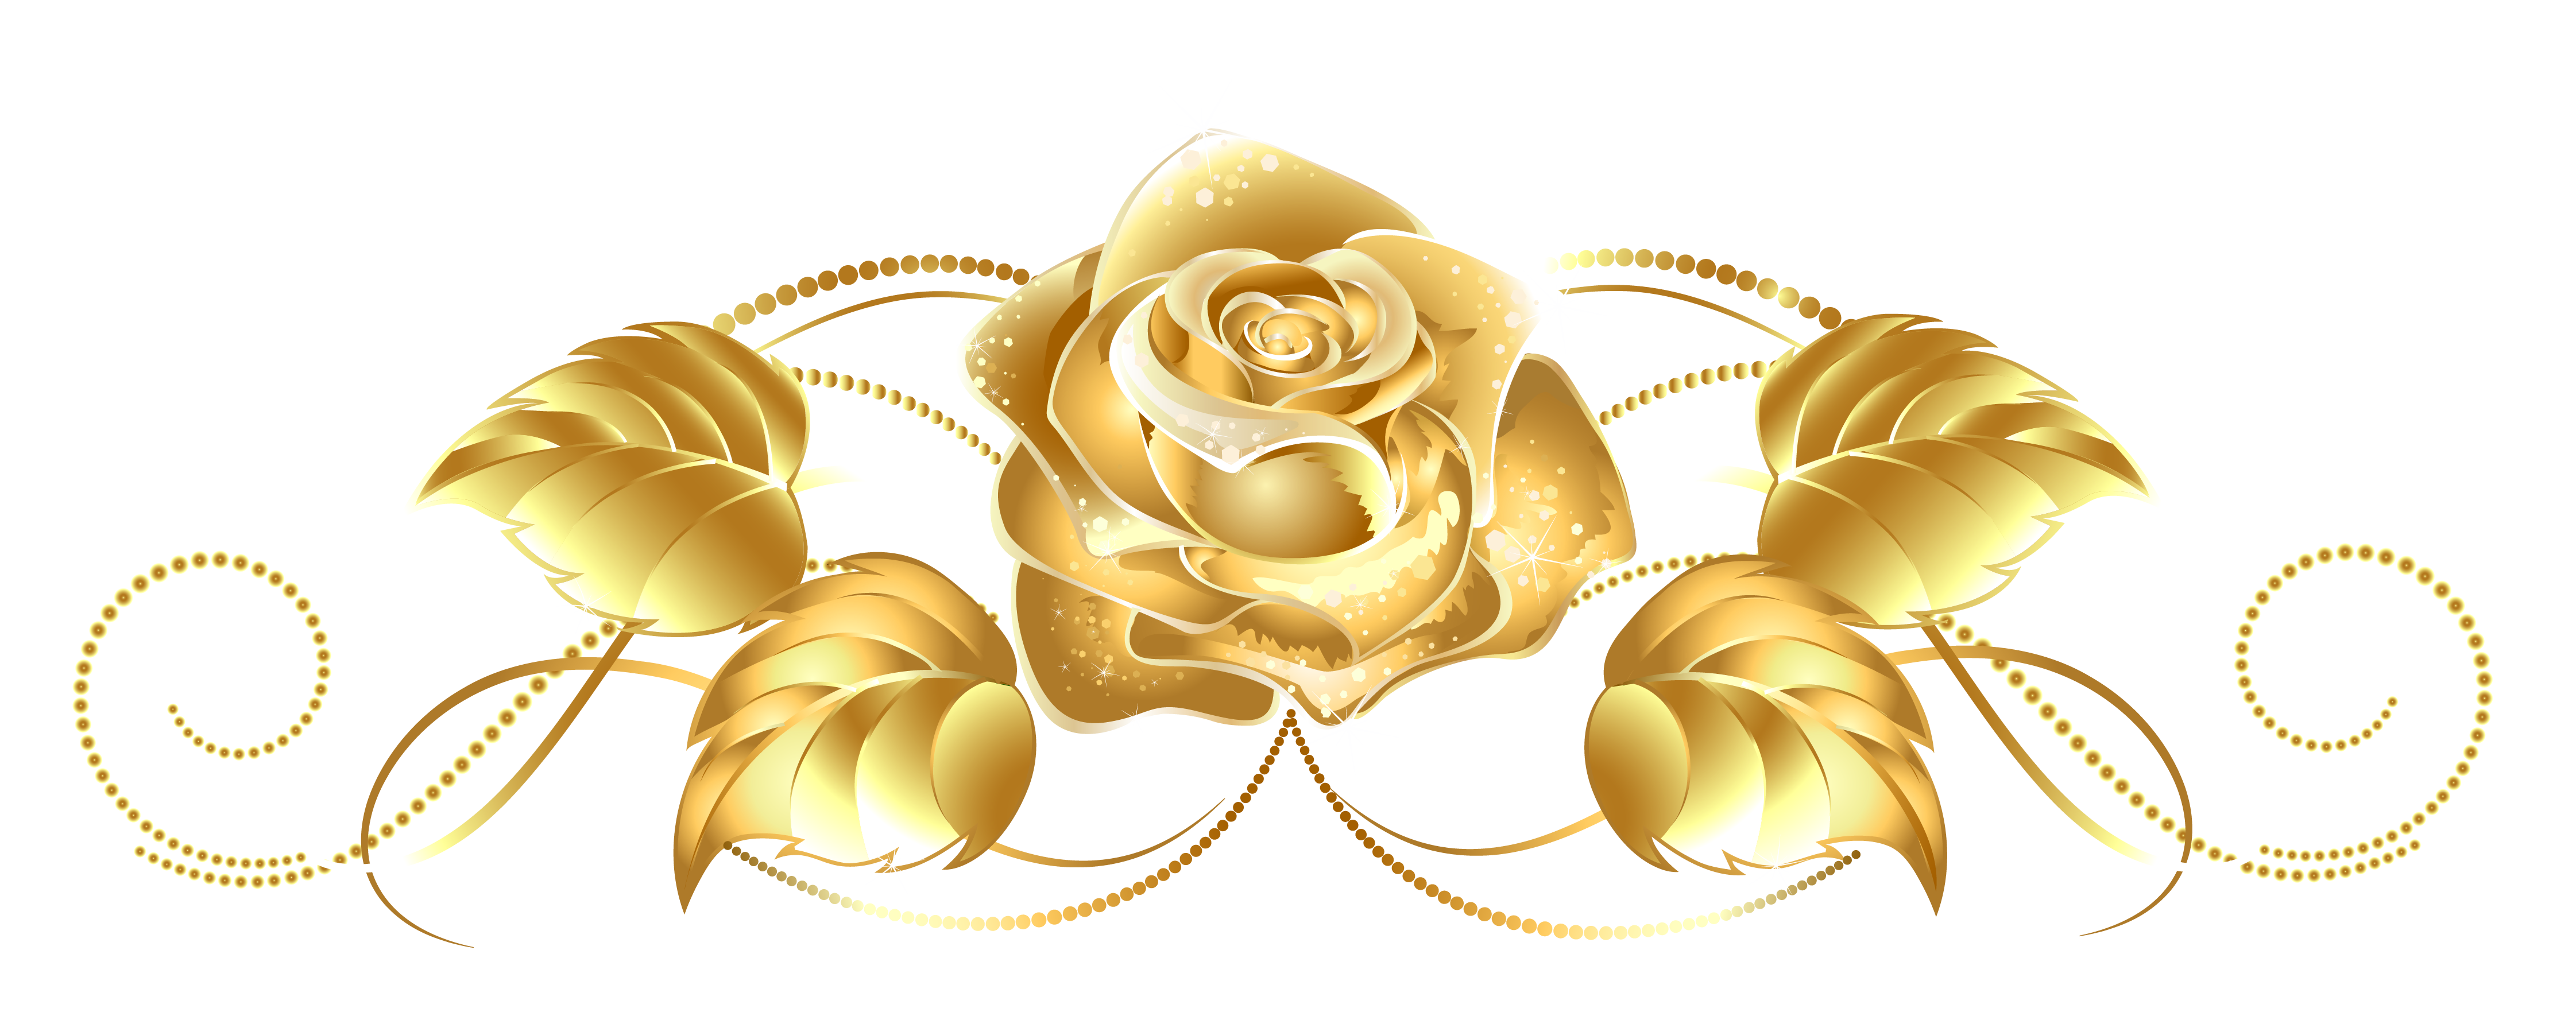 Beautiful decor png clip. Clipart roses rose gold